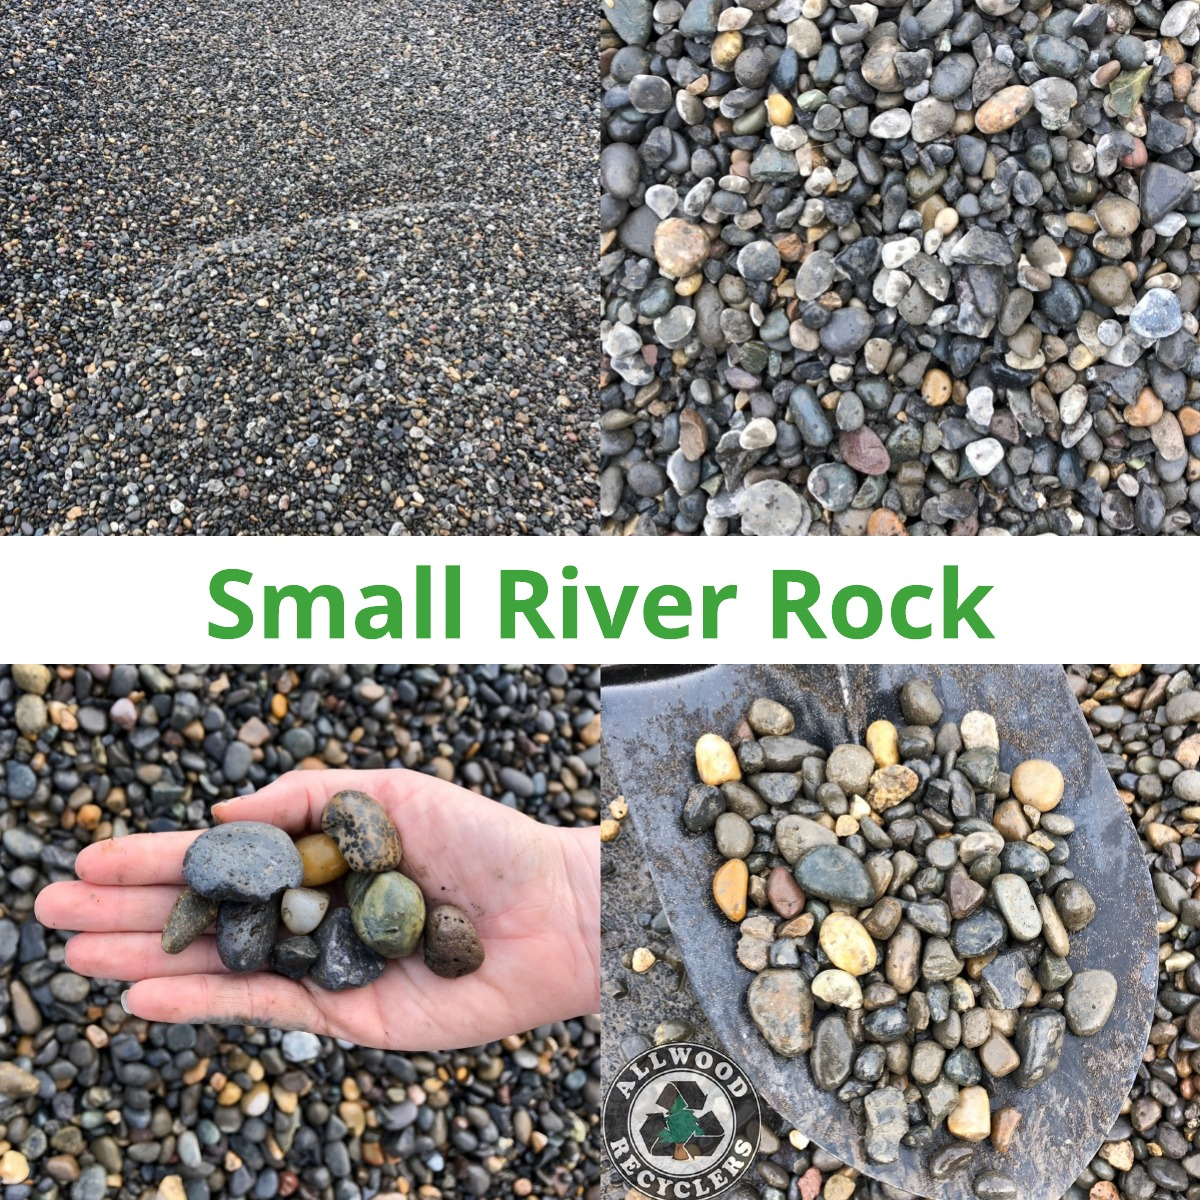 Small River Rock